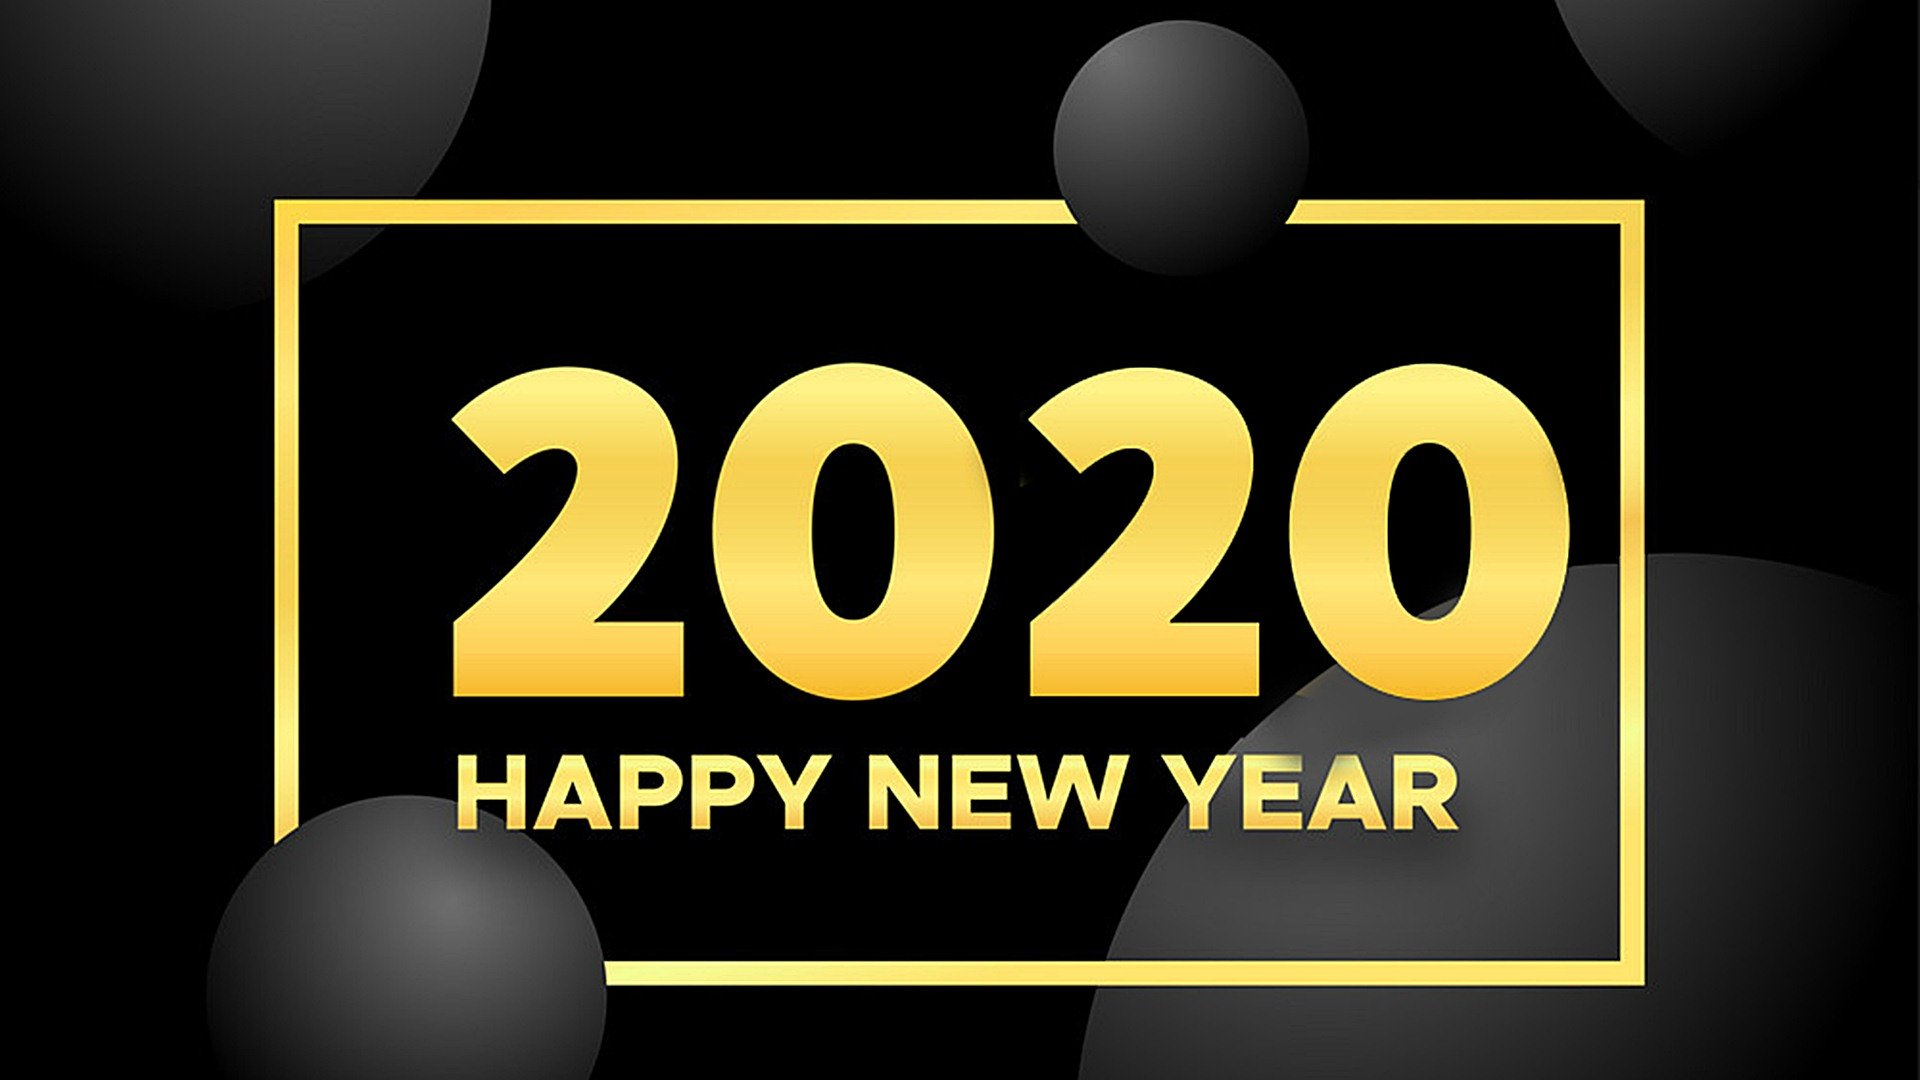 Happy New Year 2020 Background HD Wallpapers 45540   Baltana 1920x1080